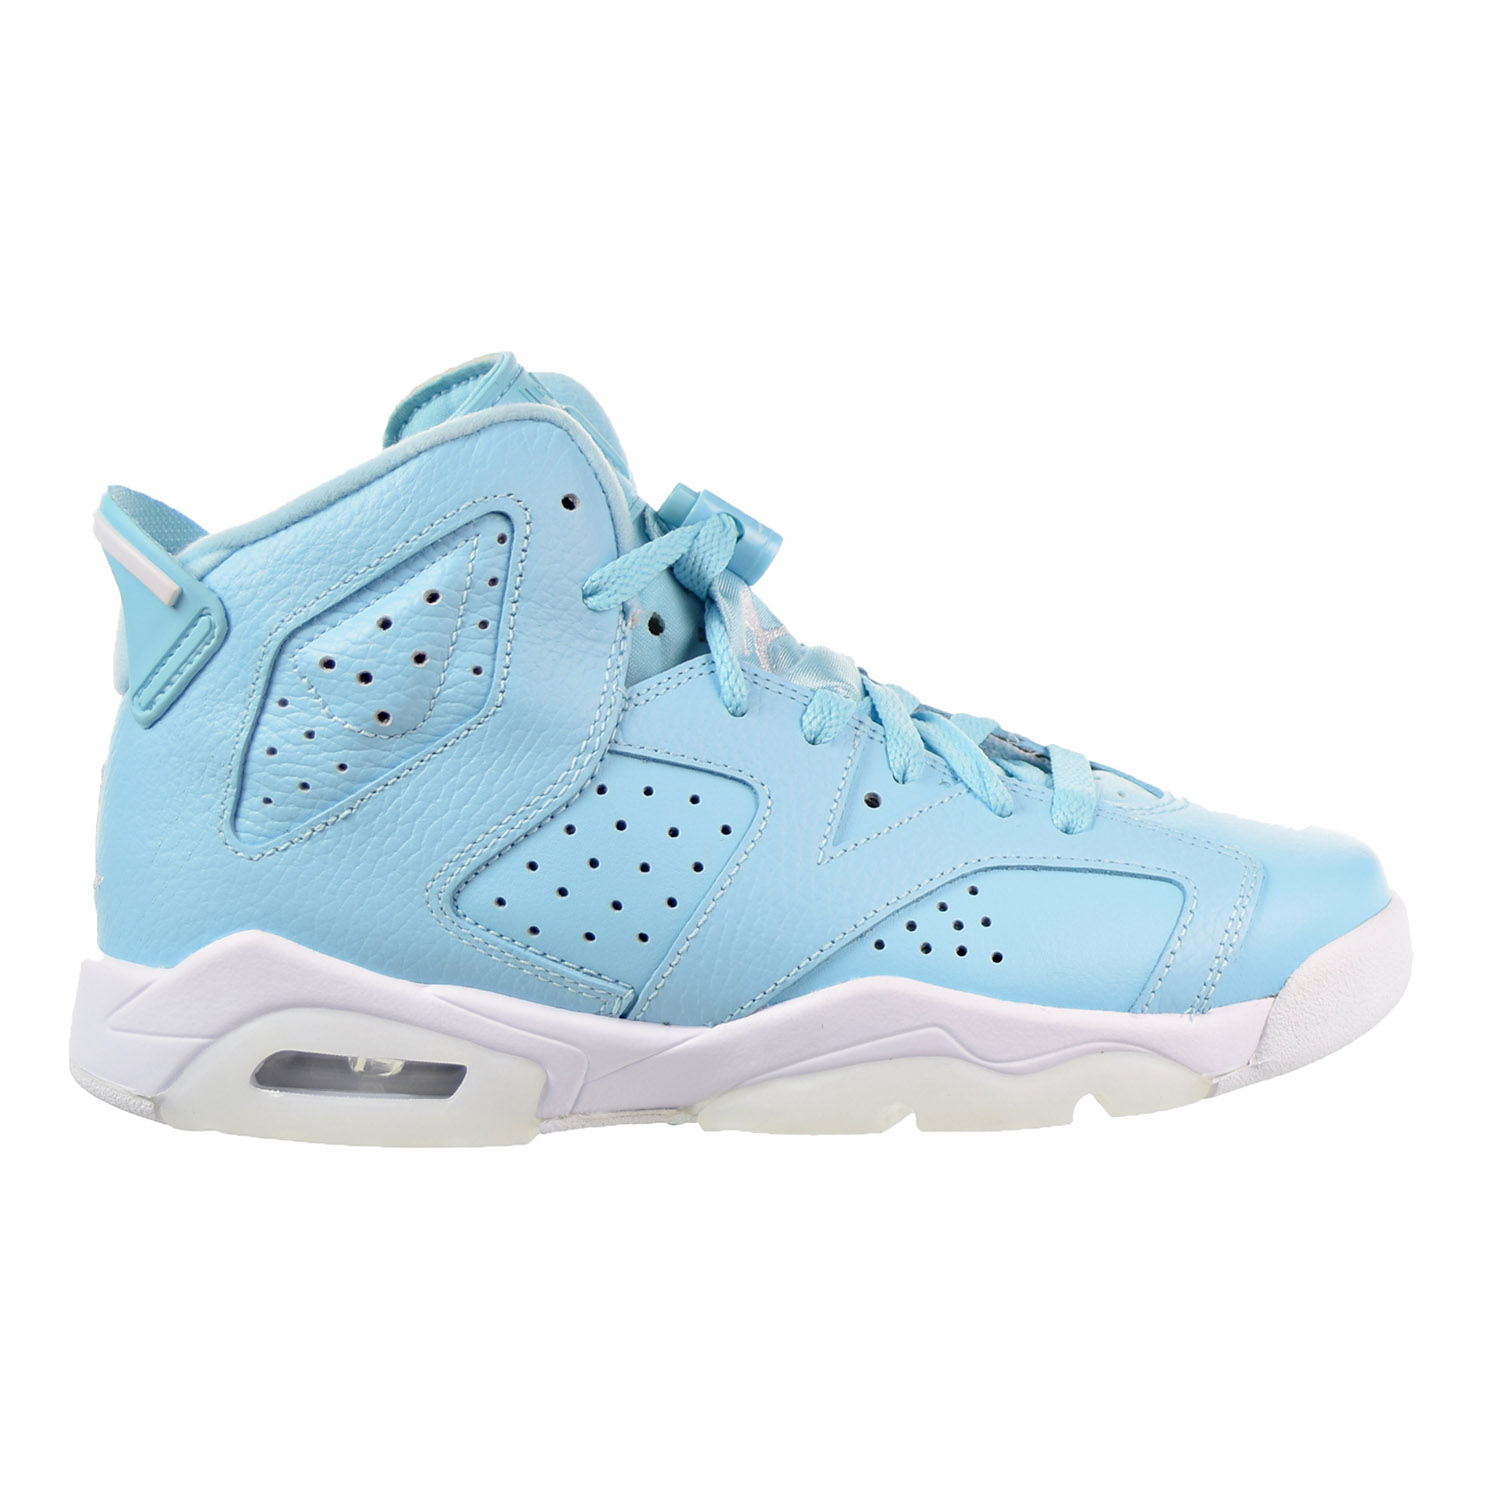 Jordan Fly 89 GG big kids Shoes AA4040 407 size 7 YOUTH RETAIL $85 NEW